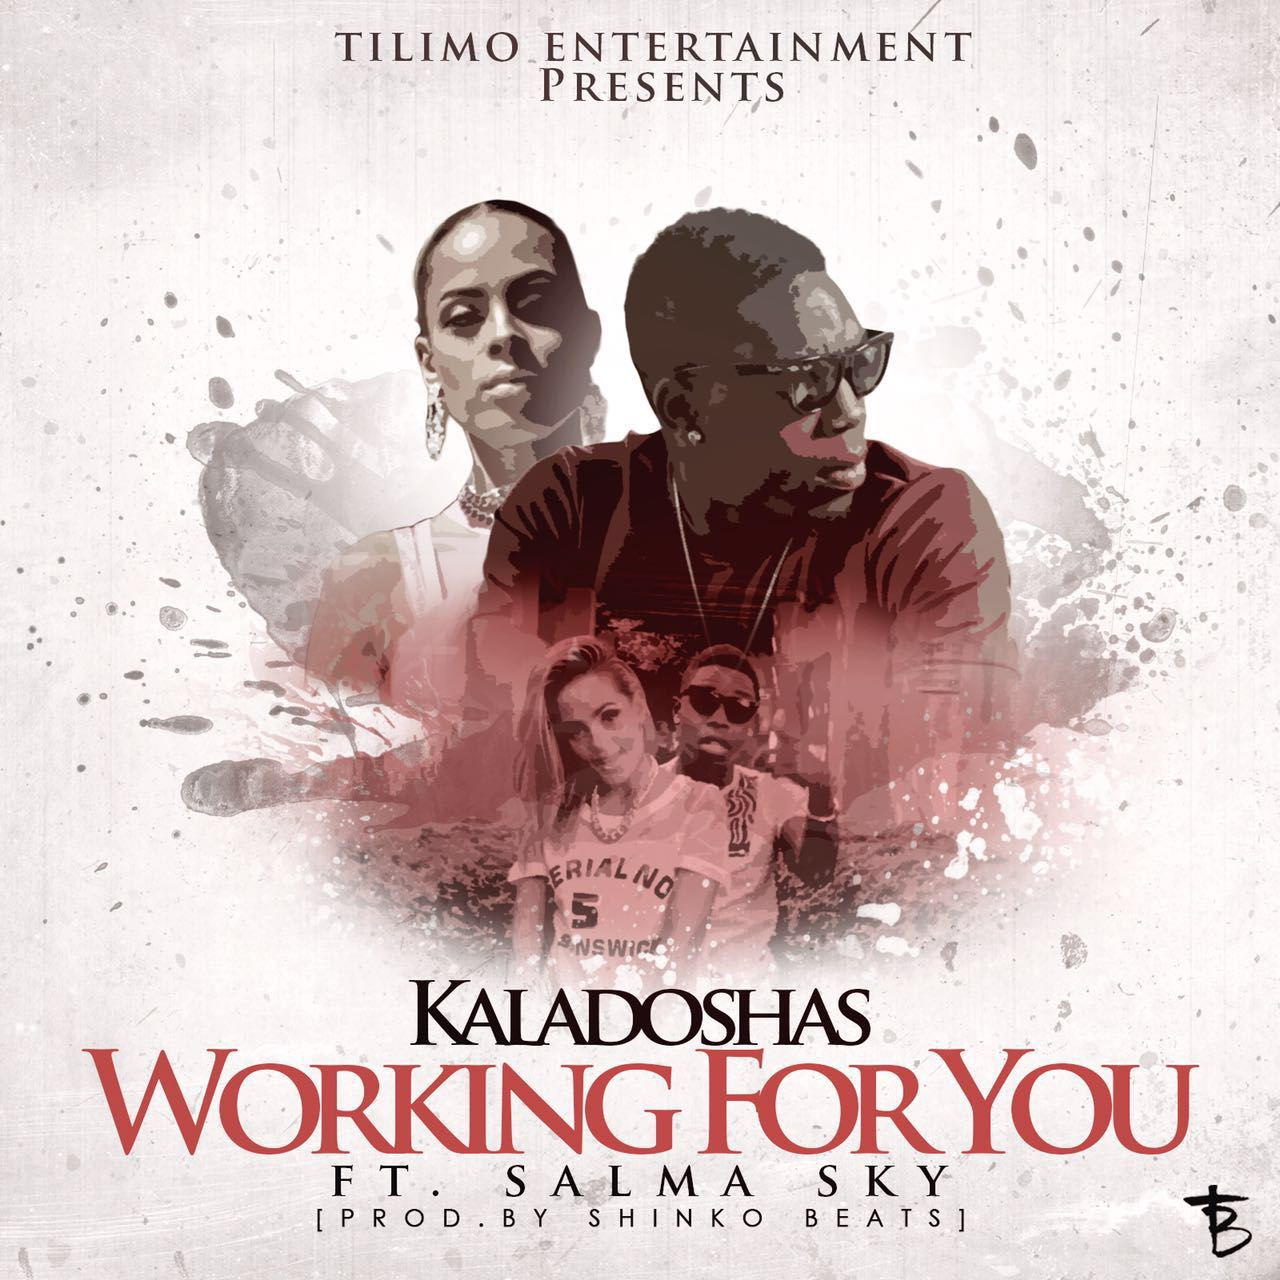 kaladoshas-working-for-you-artwork